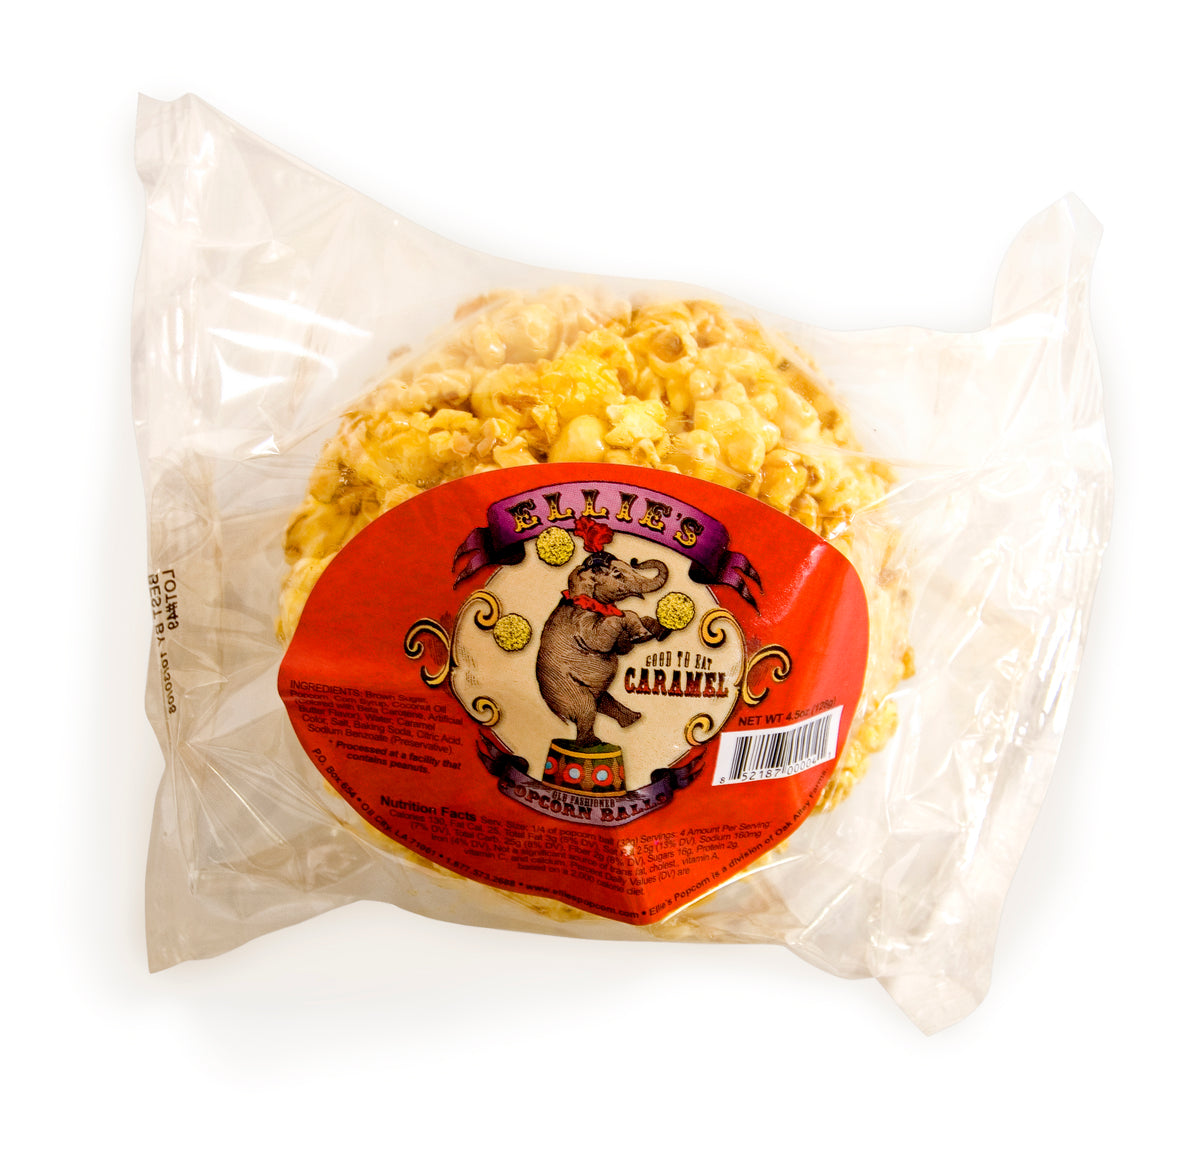 Ellie's - Caramel Popcorn Ball Open Stock